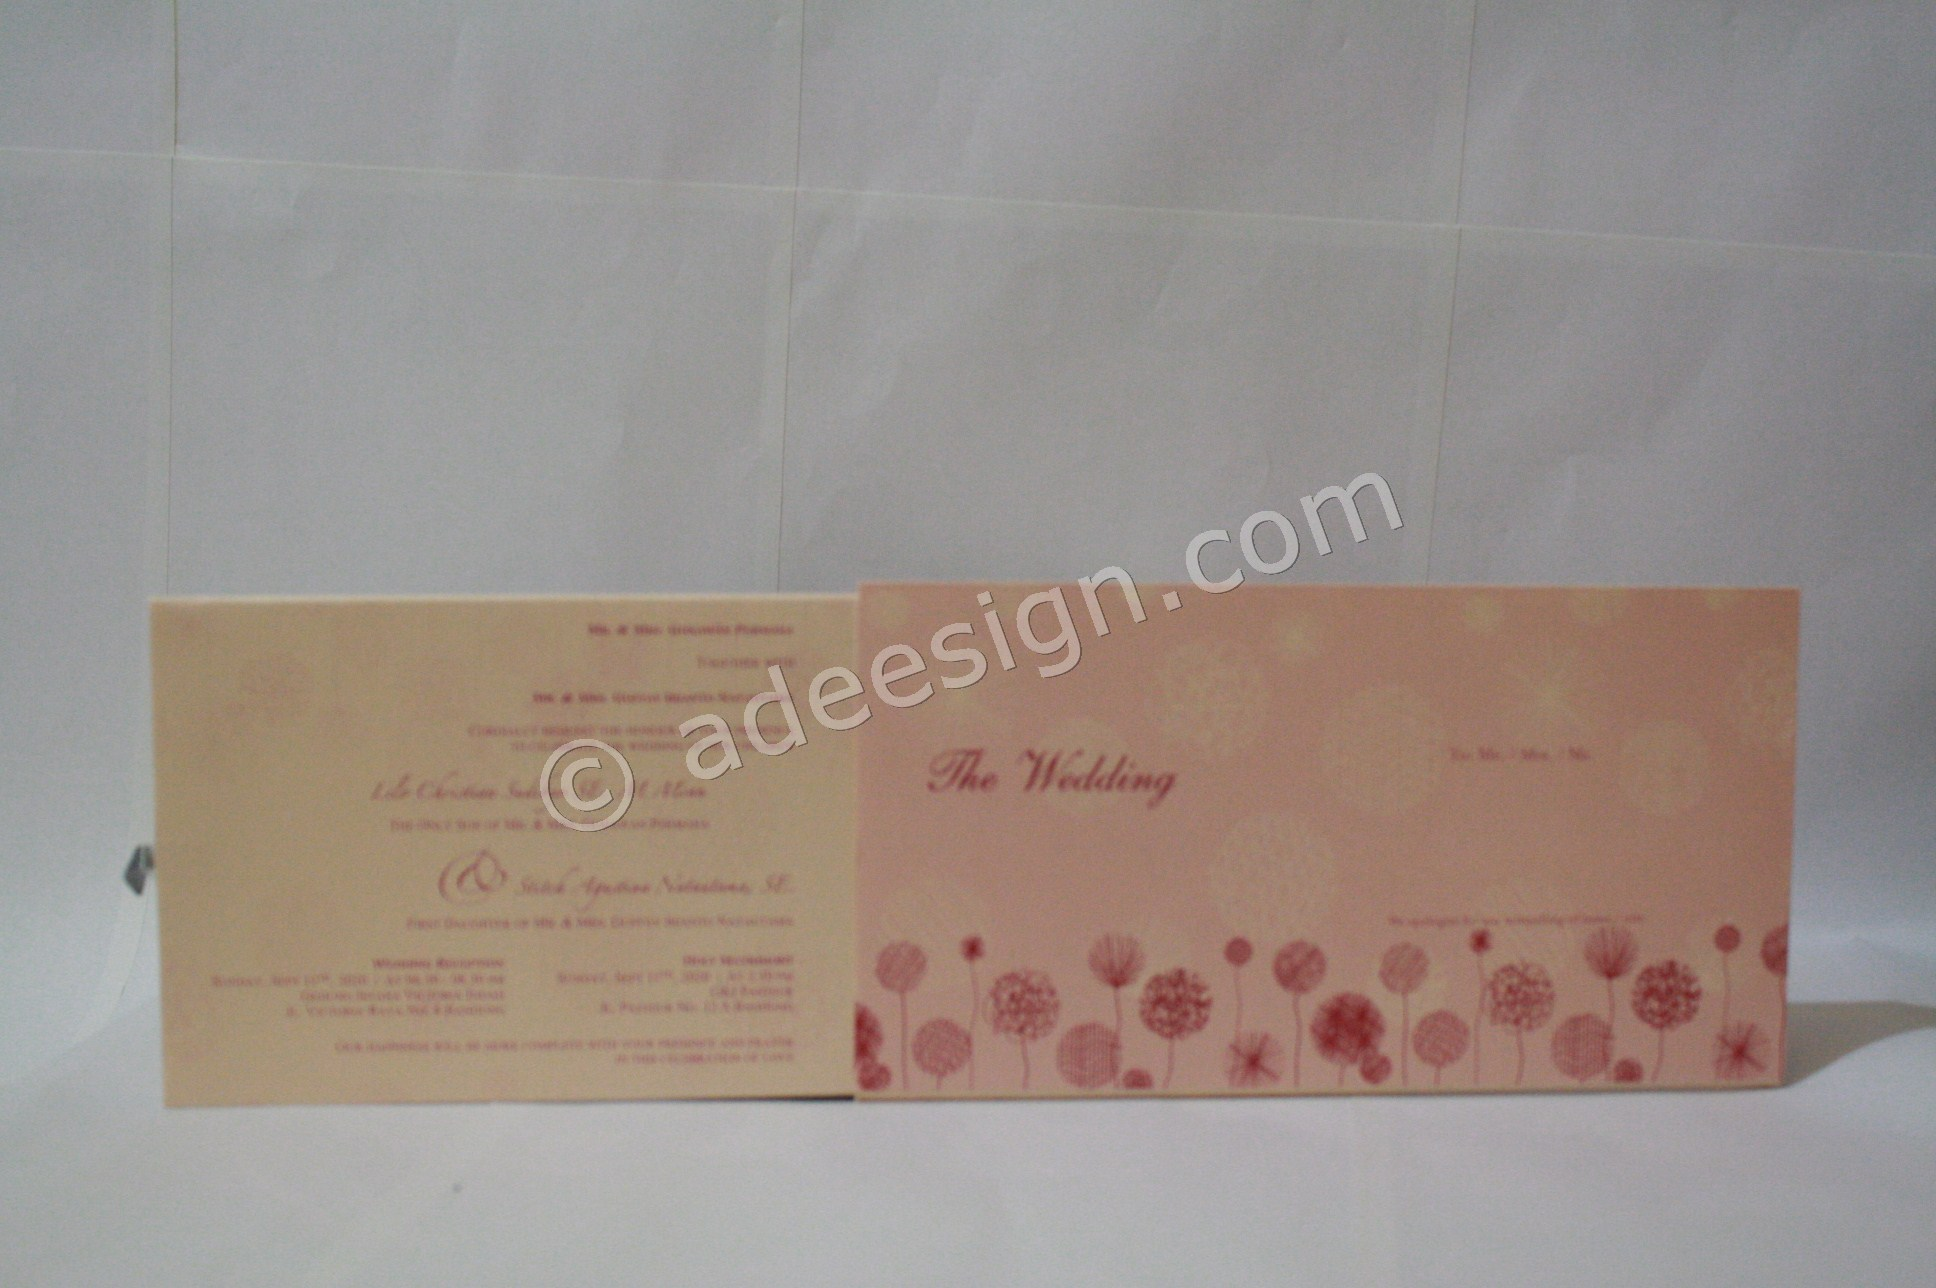 Undangan Pernikahan Hardcover ED67 3 - Desain Wedding Invitations Unik dan Simple